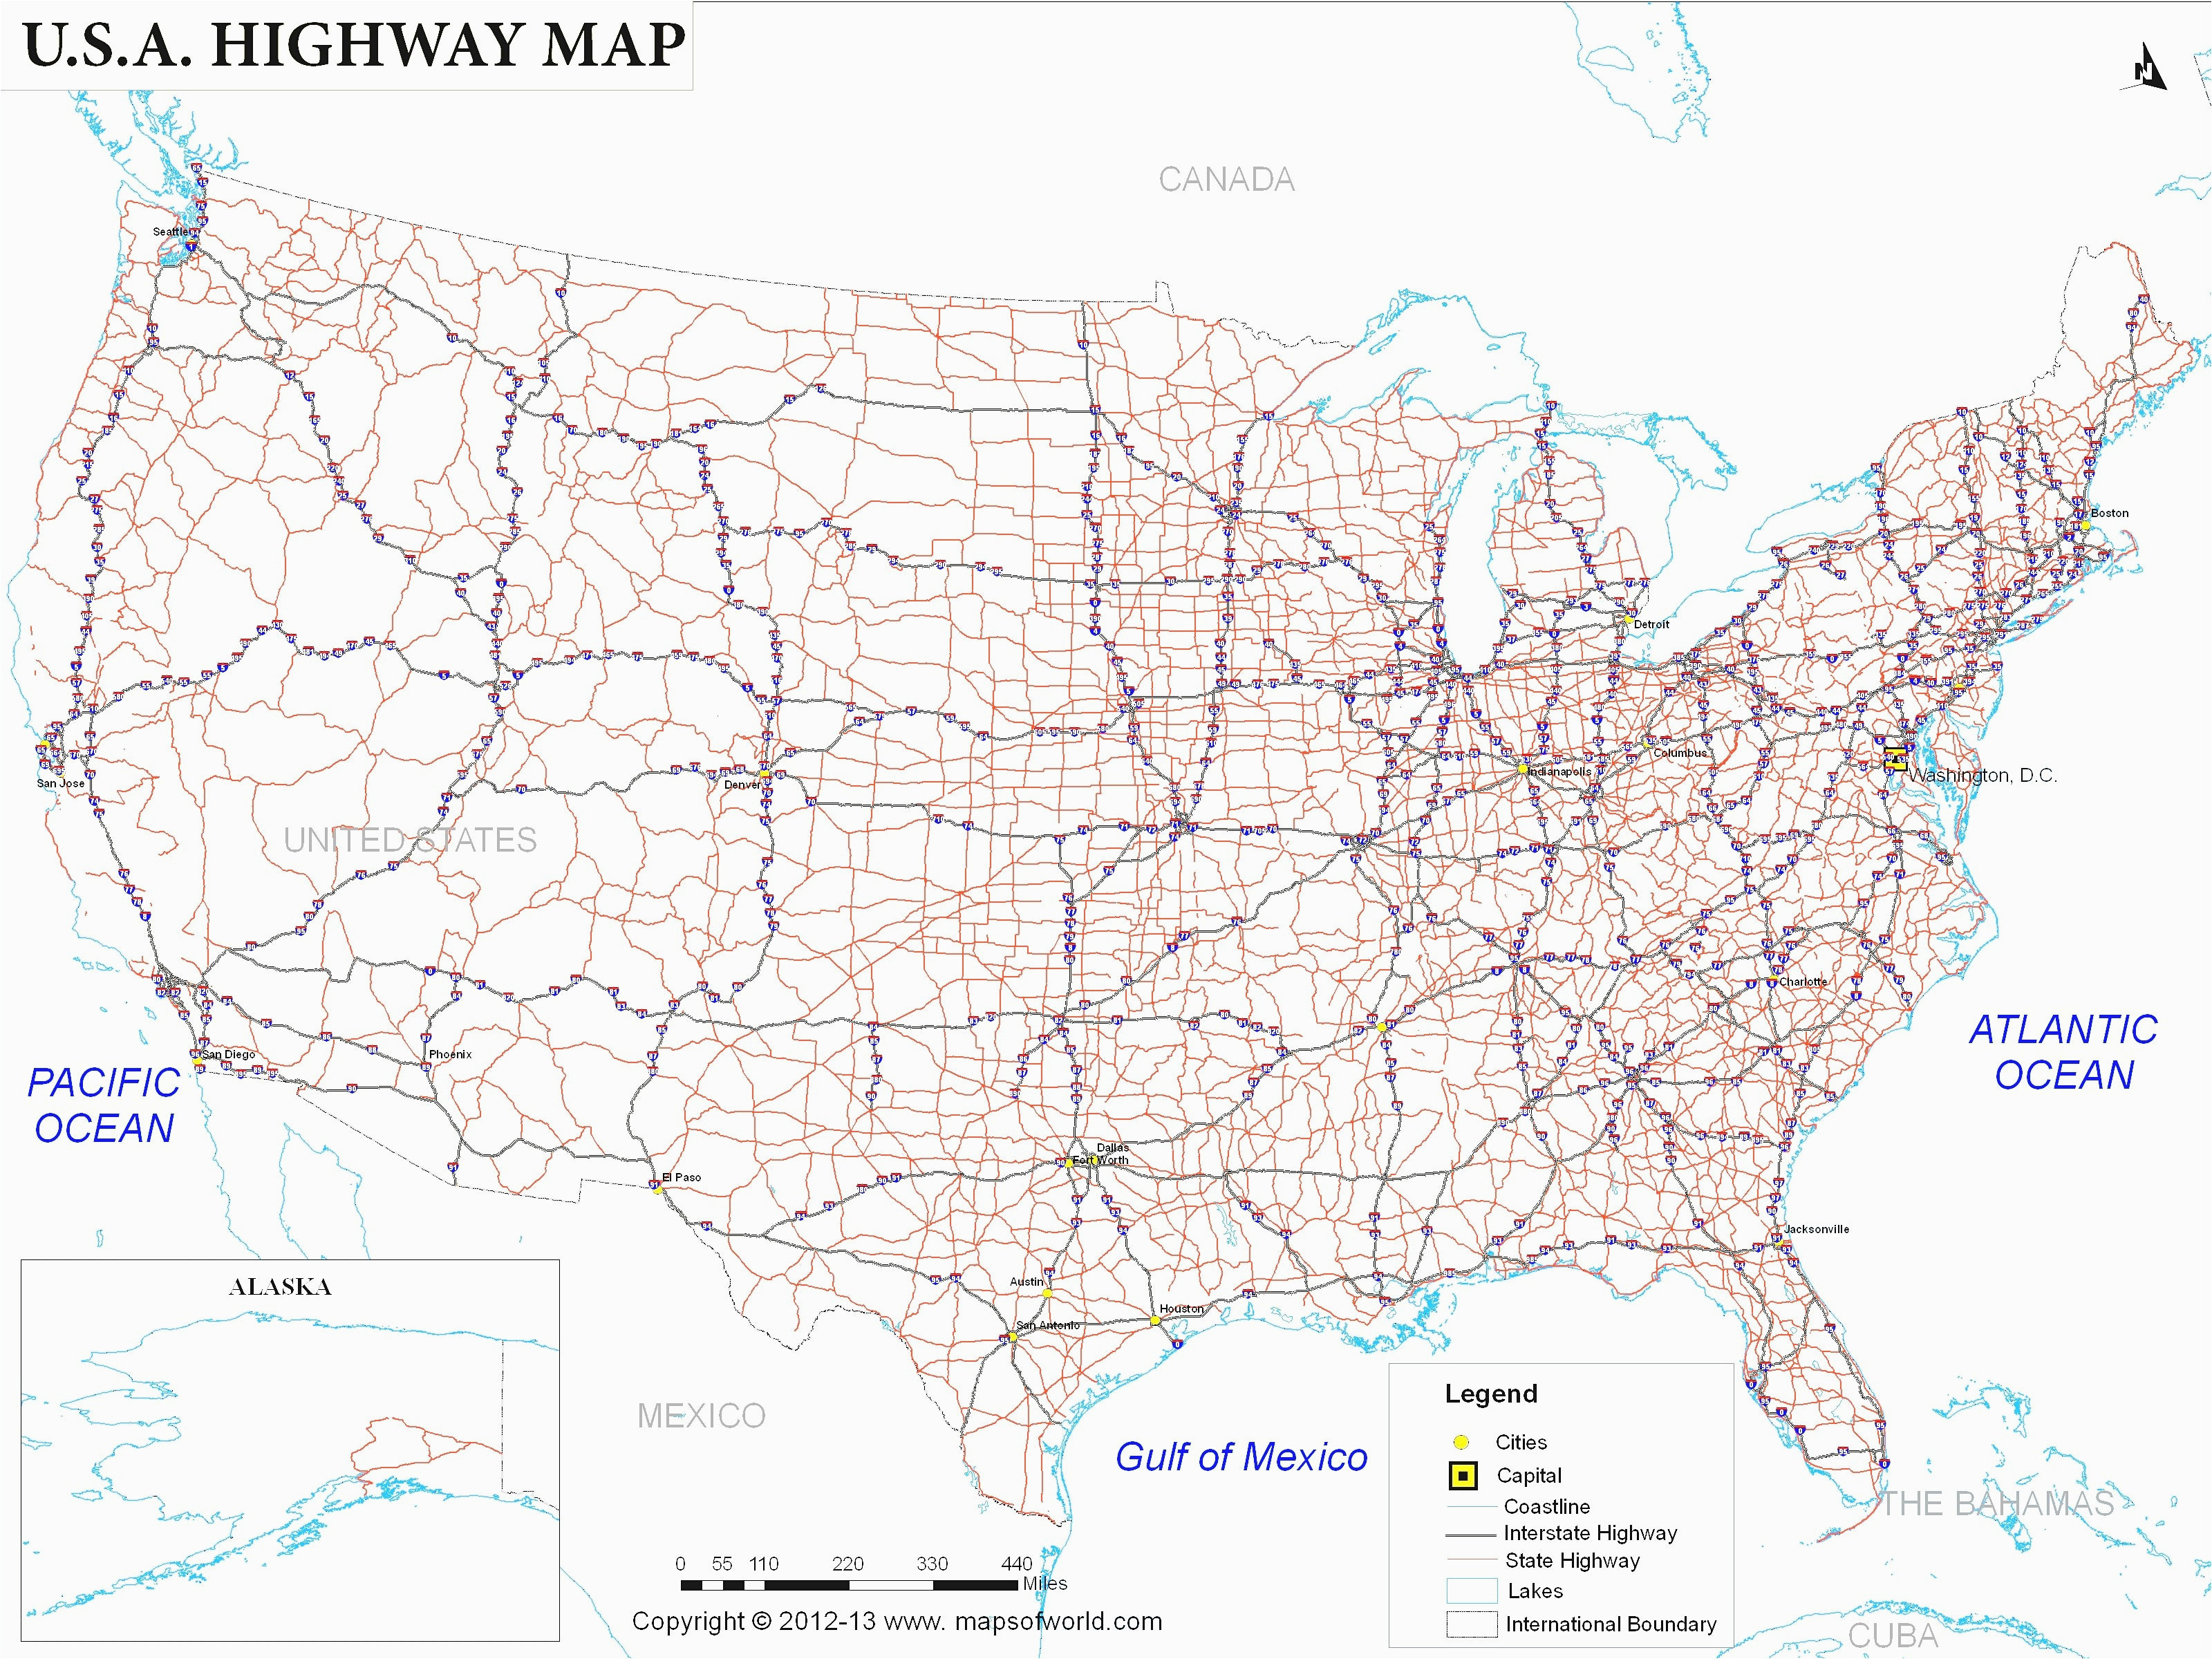 georgia county map elegant georgia state route 141 ny county map